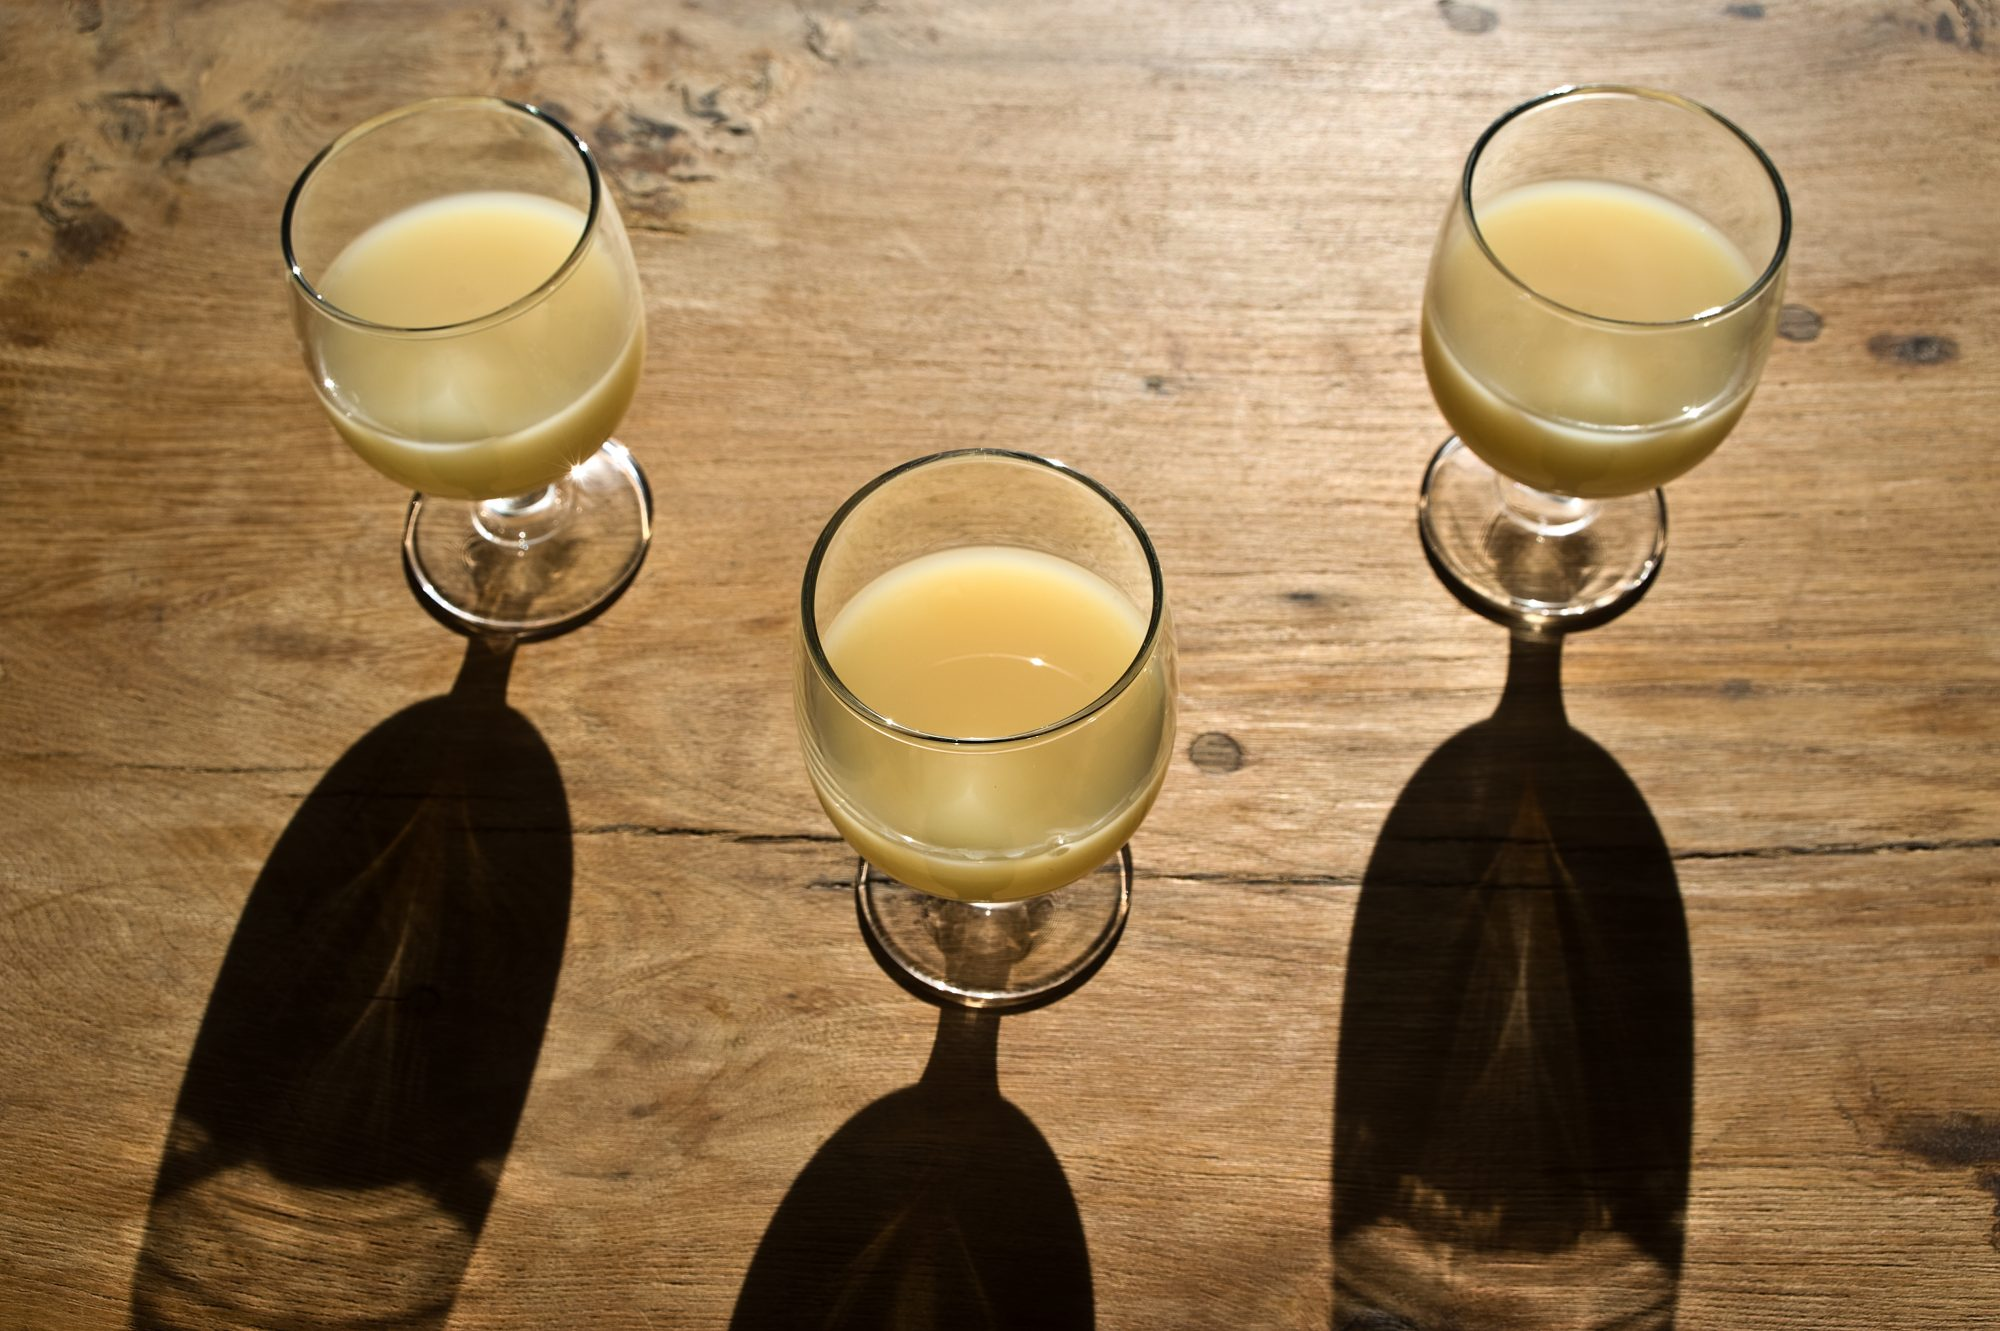 pastis french Iconic Anise Aperitif